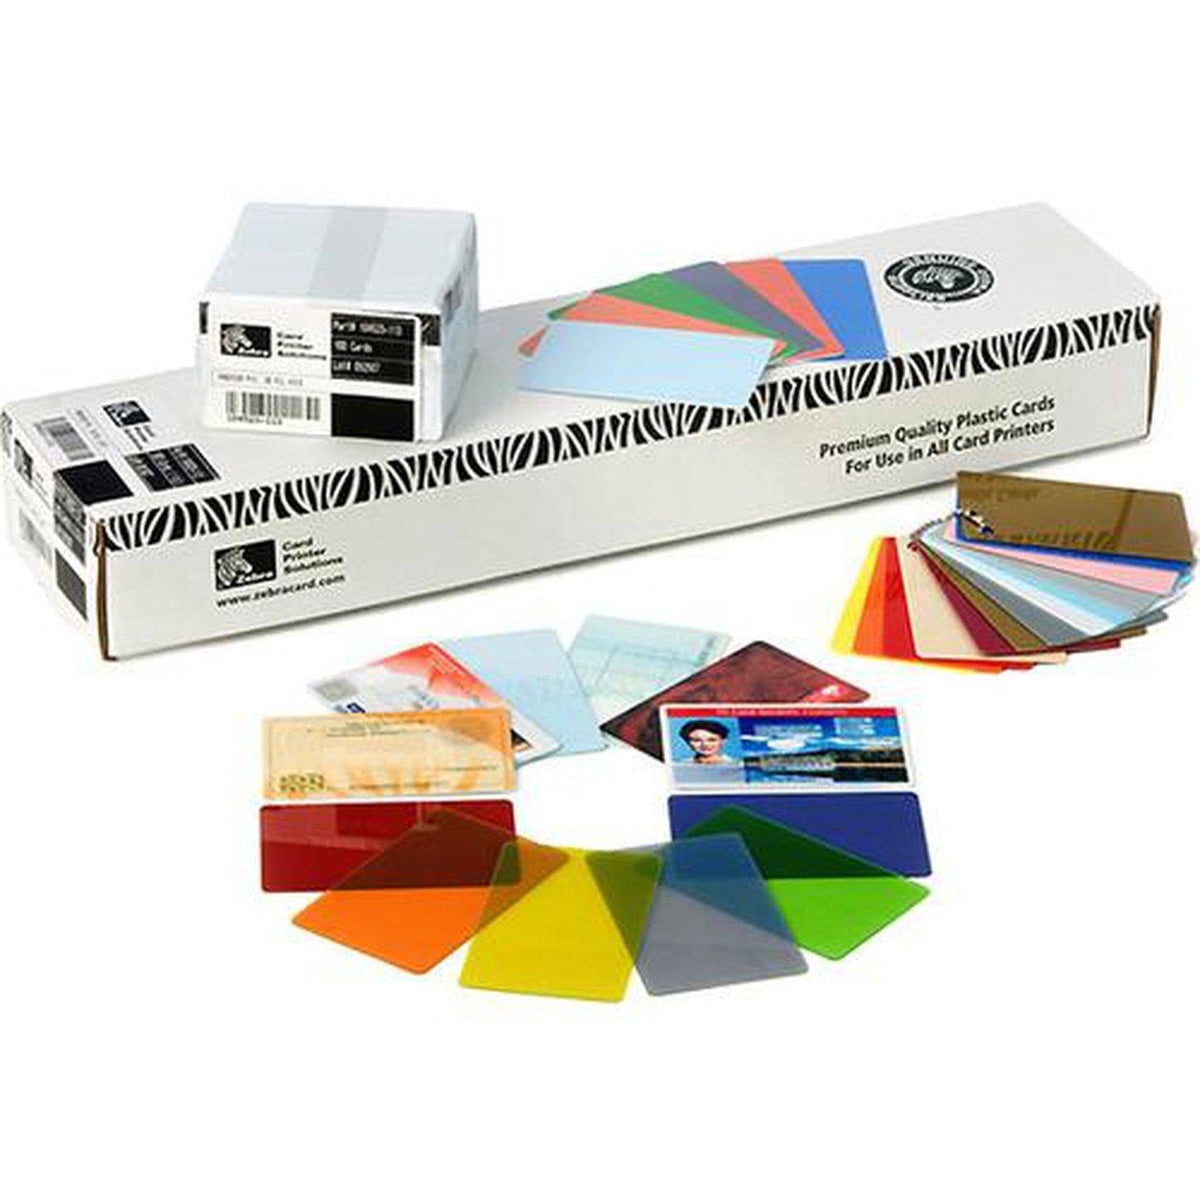 Zebra Premier Colour PVC Cards, Gold Metallic | 104523-133 Consumable Zebra